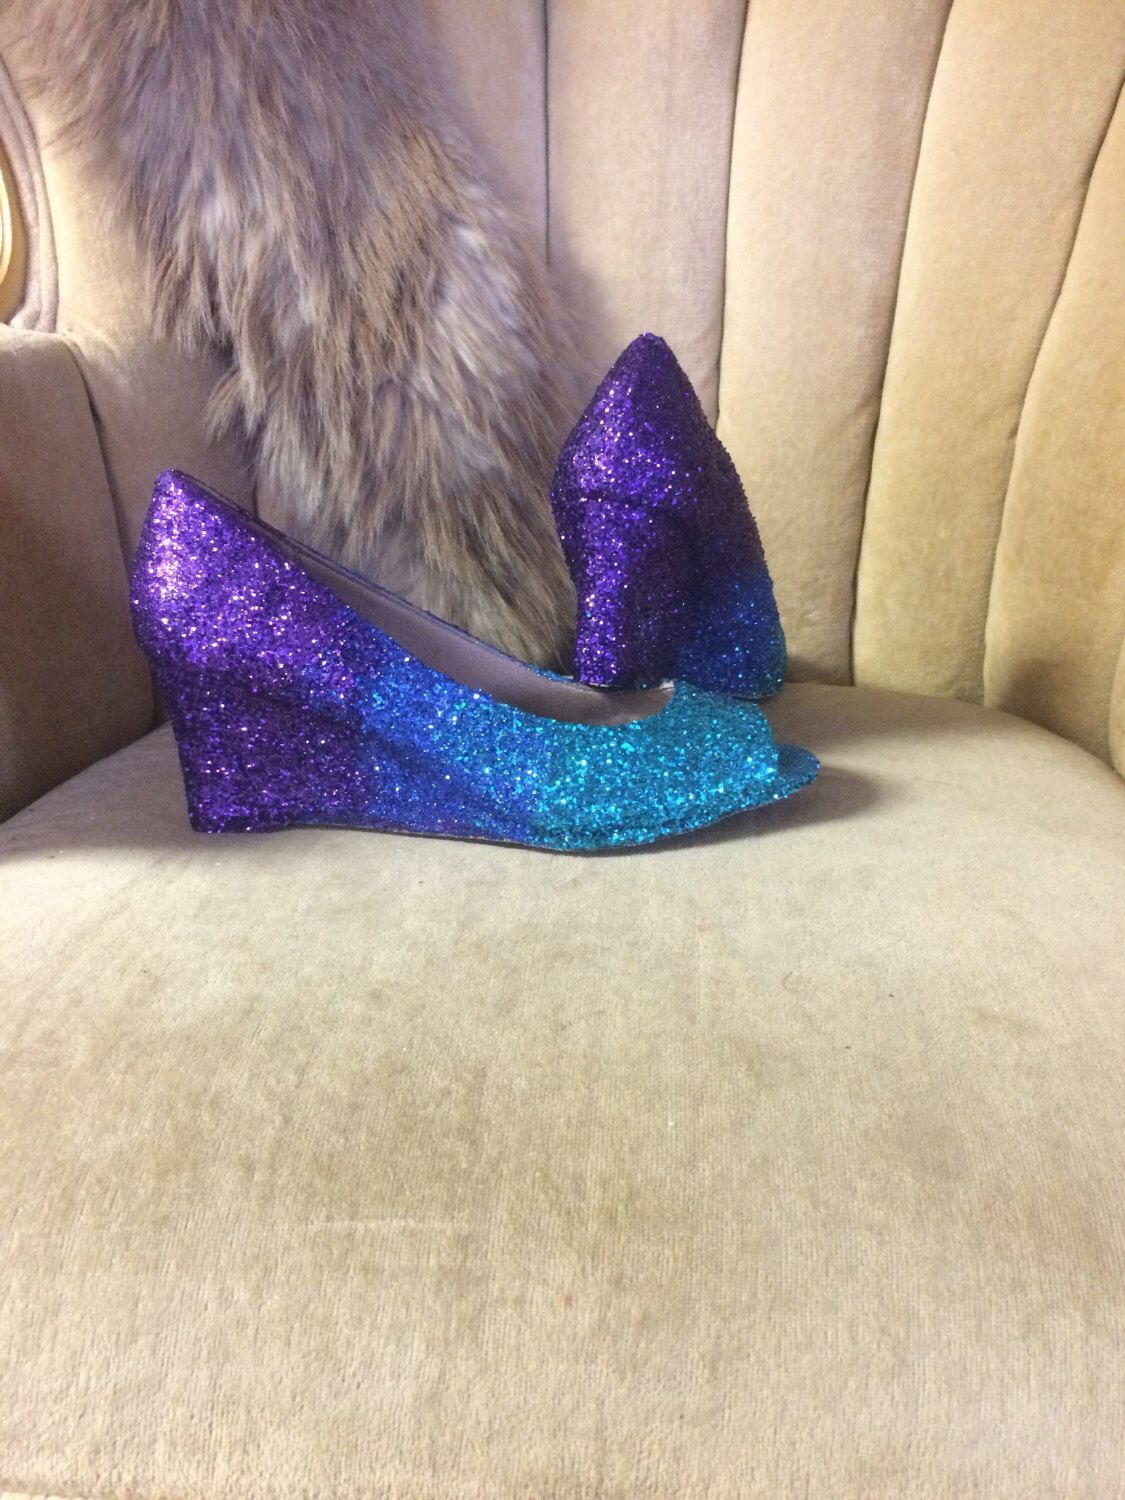 bcb567900df4 Glitter wedge high heels. Ombre purple